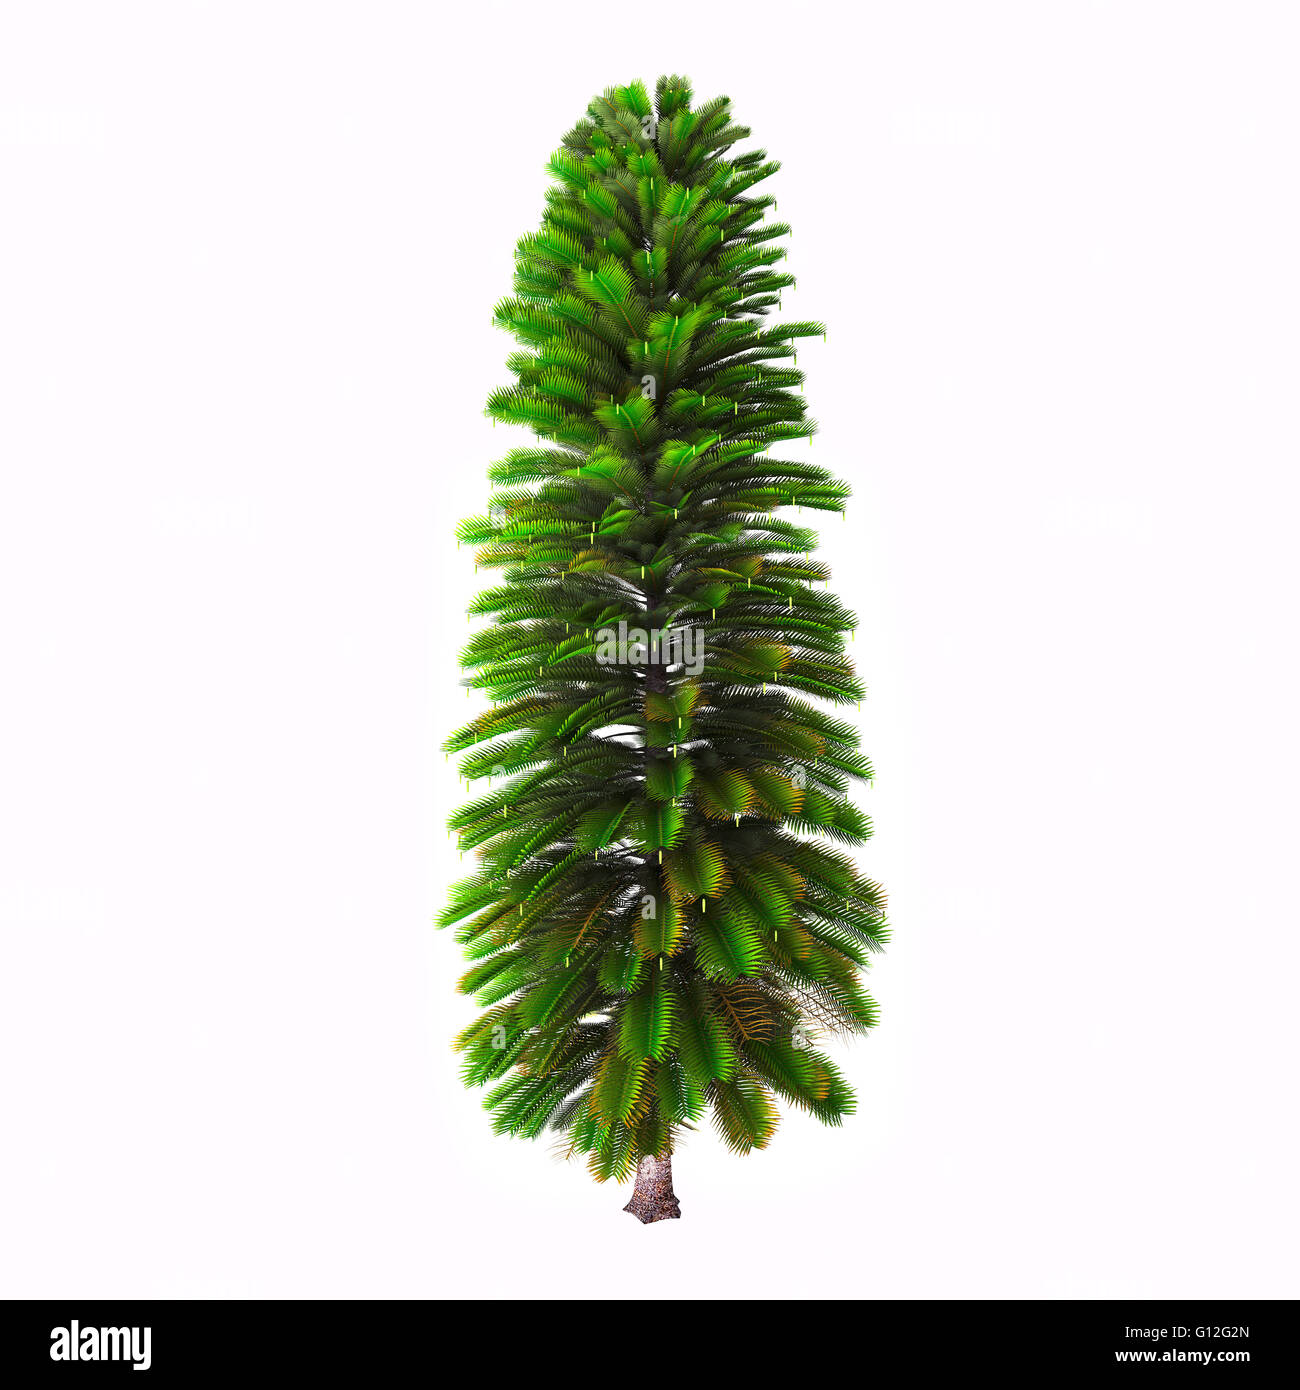 Wollemia is a genus of coniferous tree in the family Araucariaceae. - Stock Image